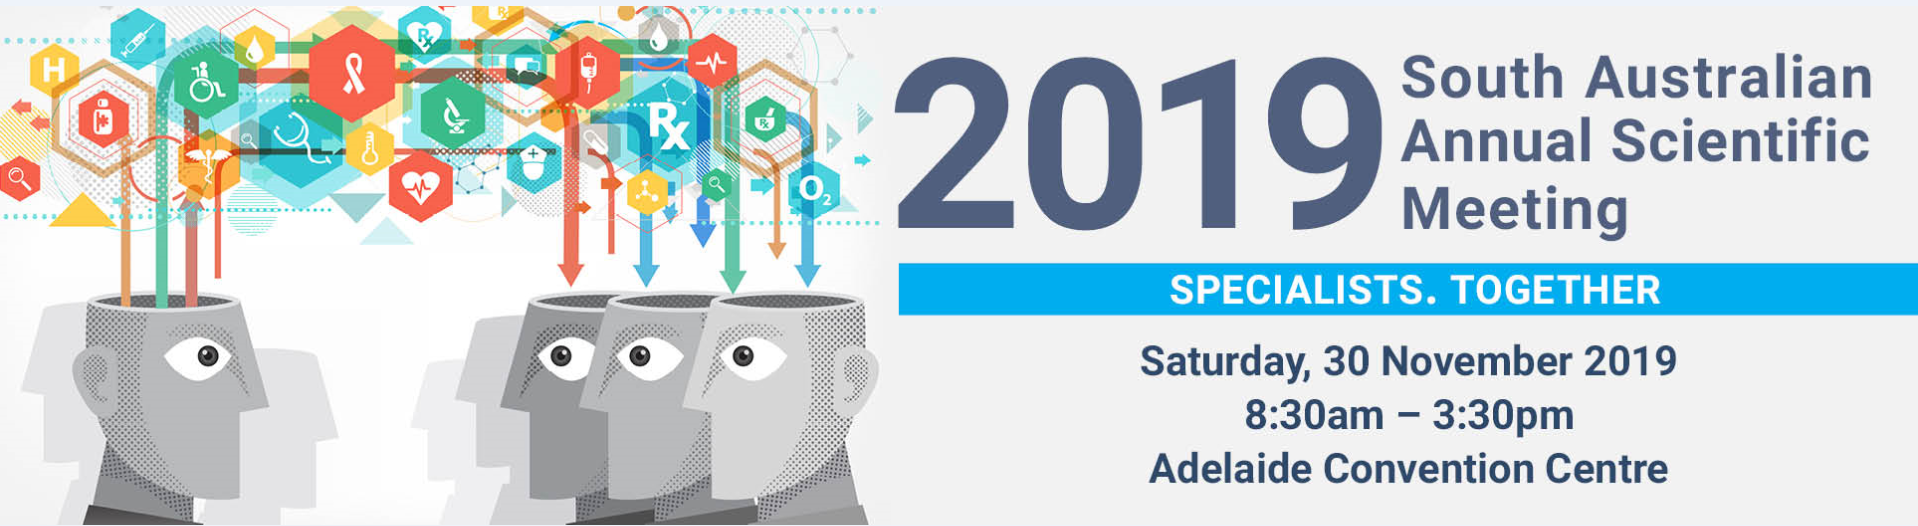 South Australian Annual Scientific Meeting 2019